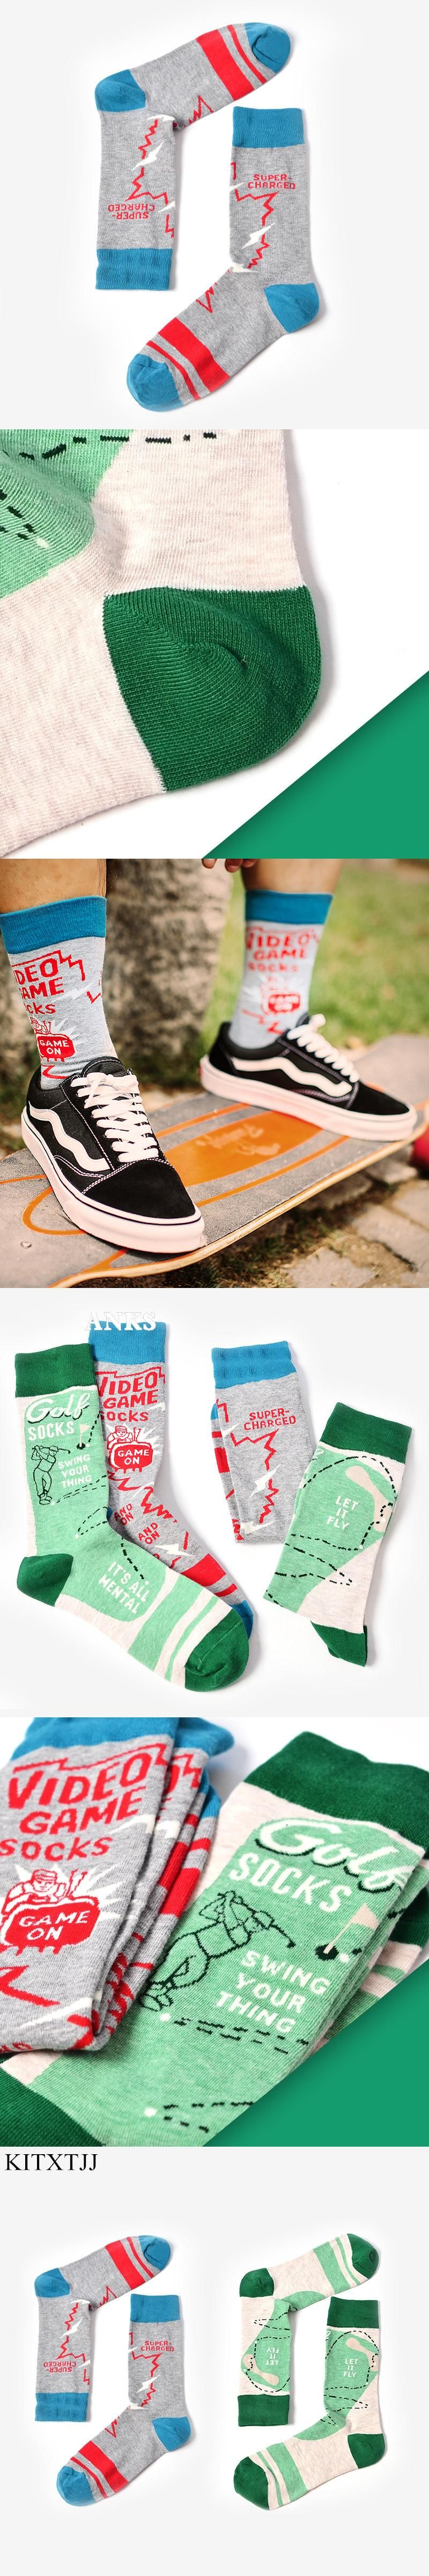 Casual Fashion Art Socks Men Cotton Crew Long Letters Character